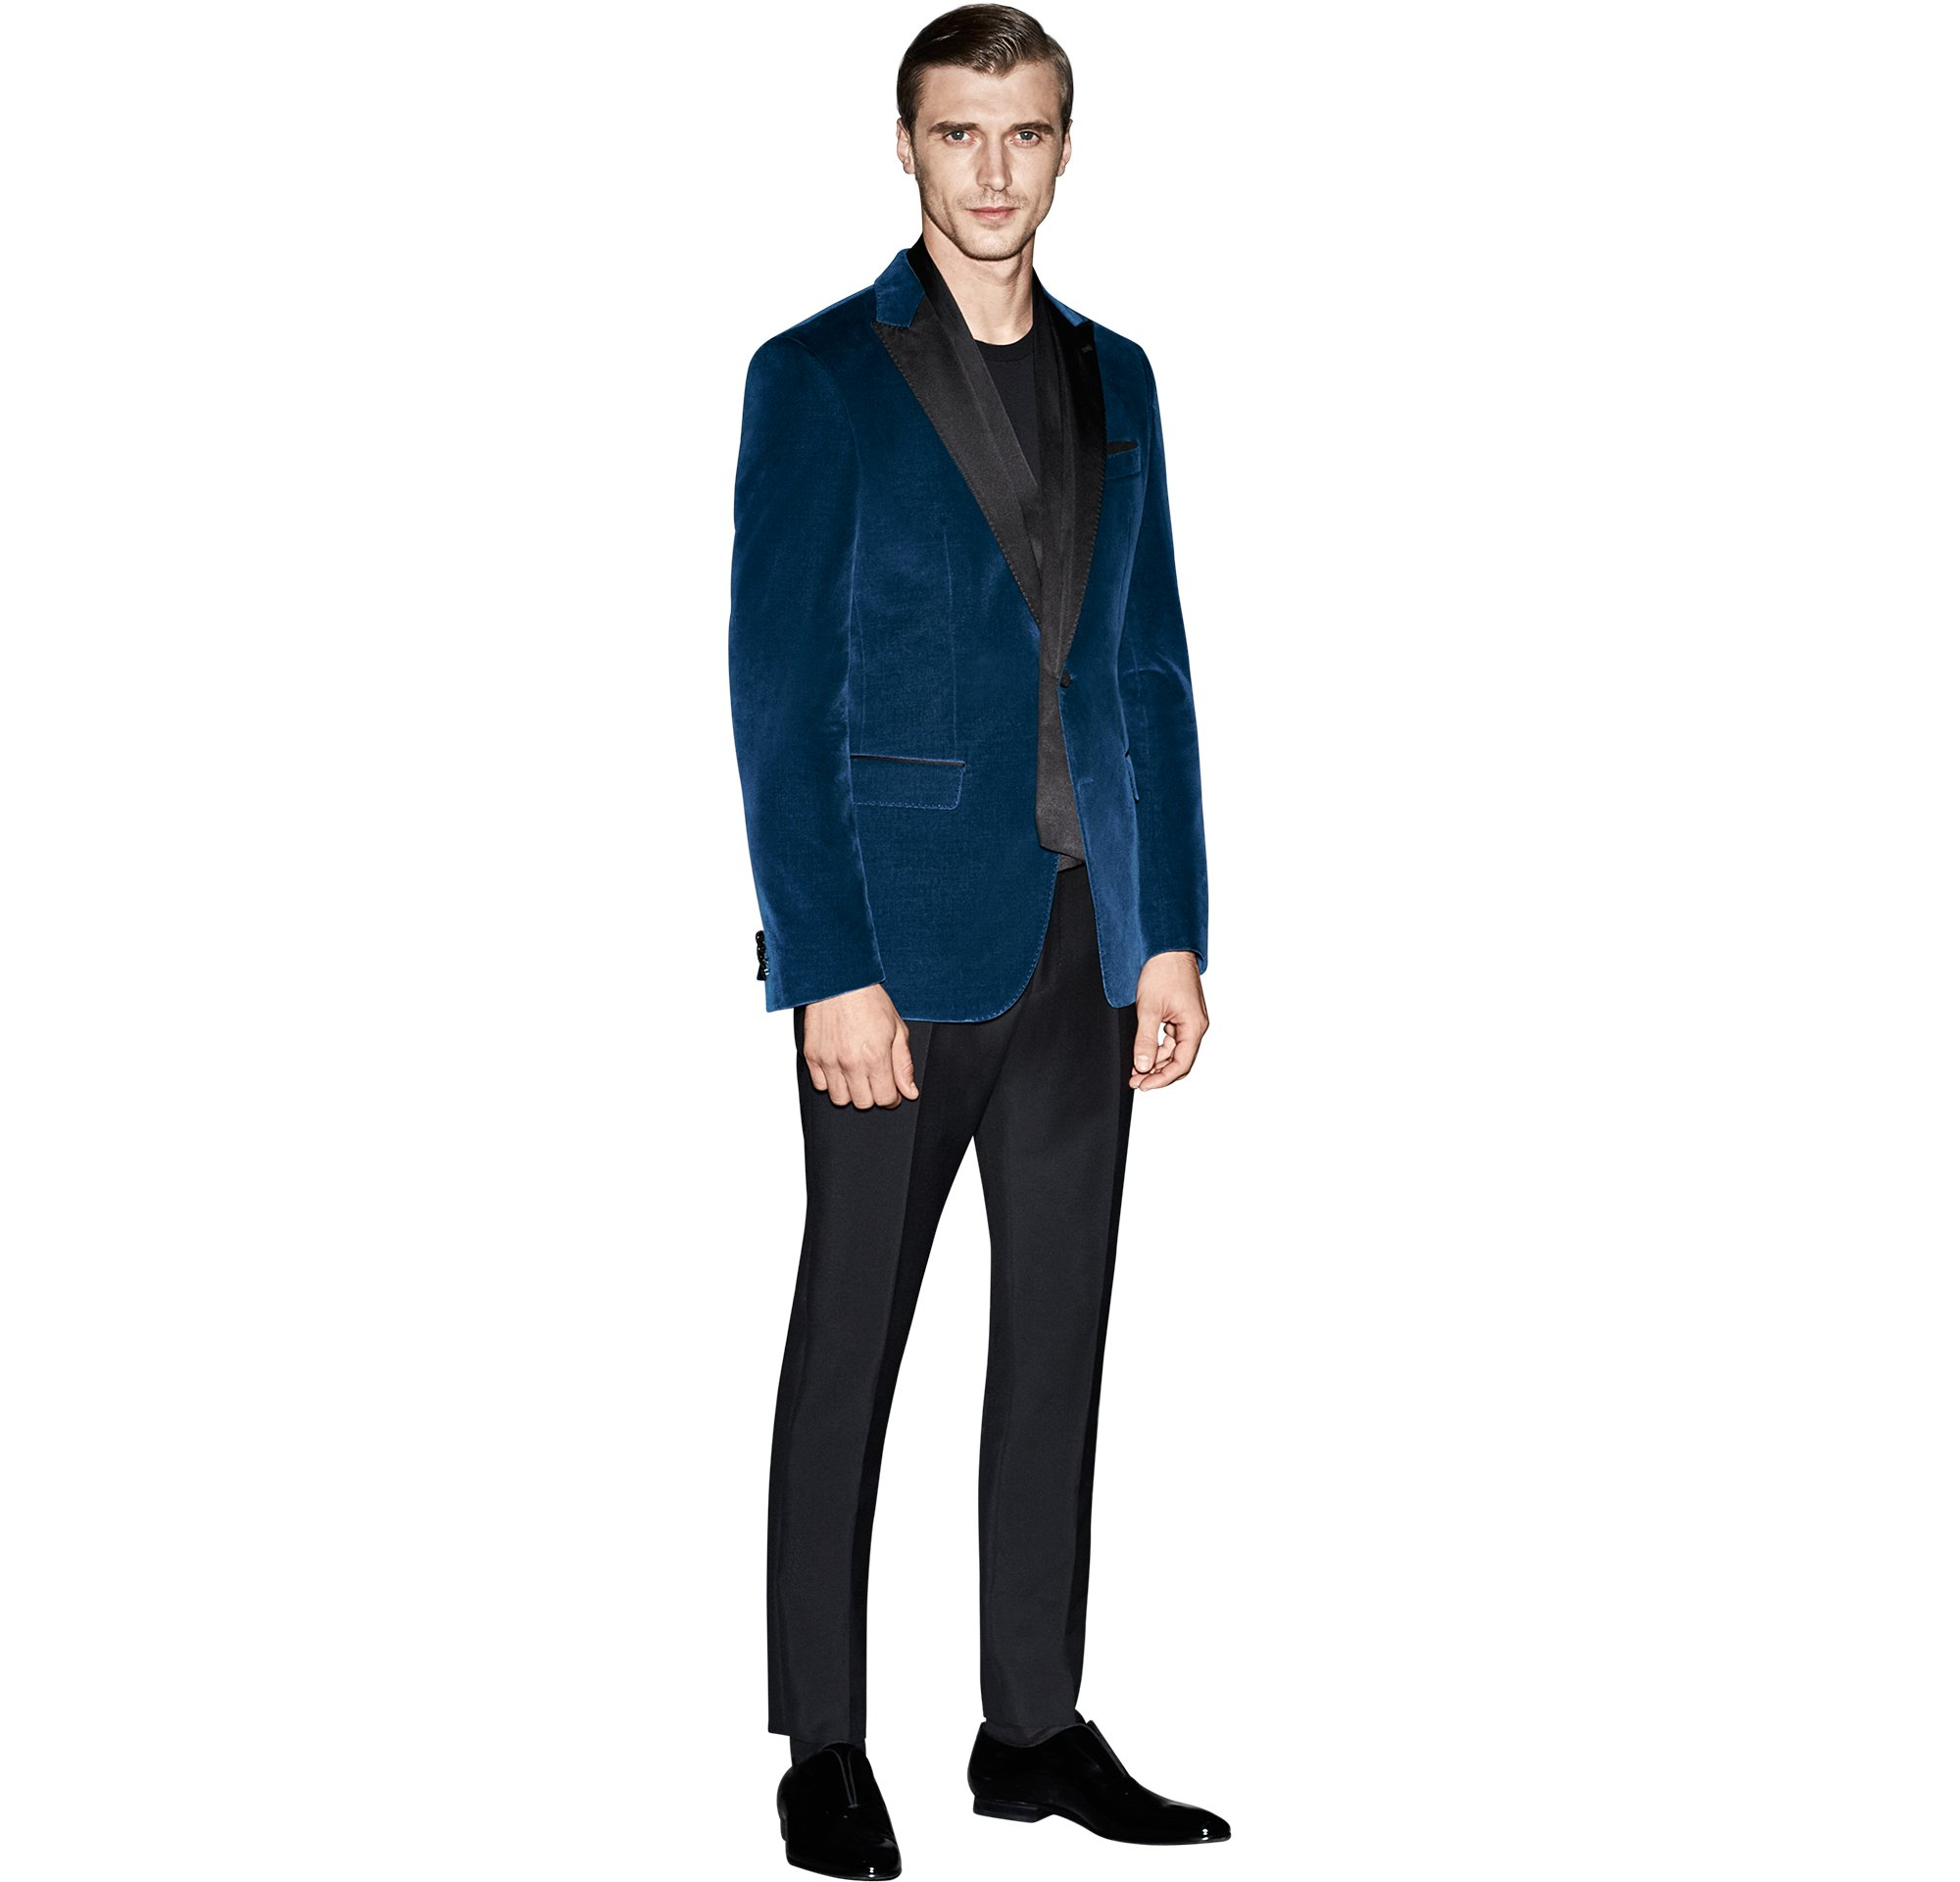 Blue jacket over black knitwear and black trousers with black neckwear and black shoes by BOSS